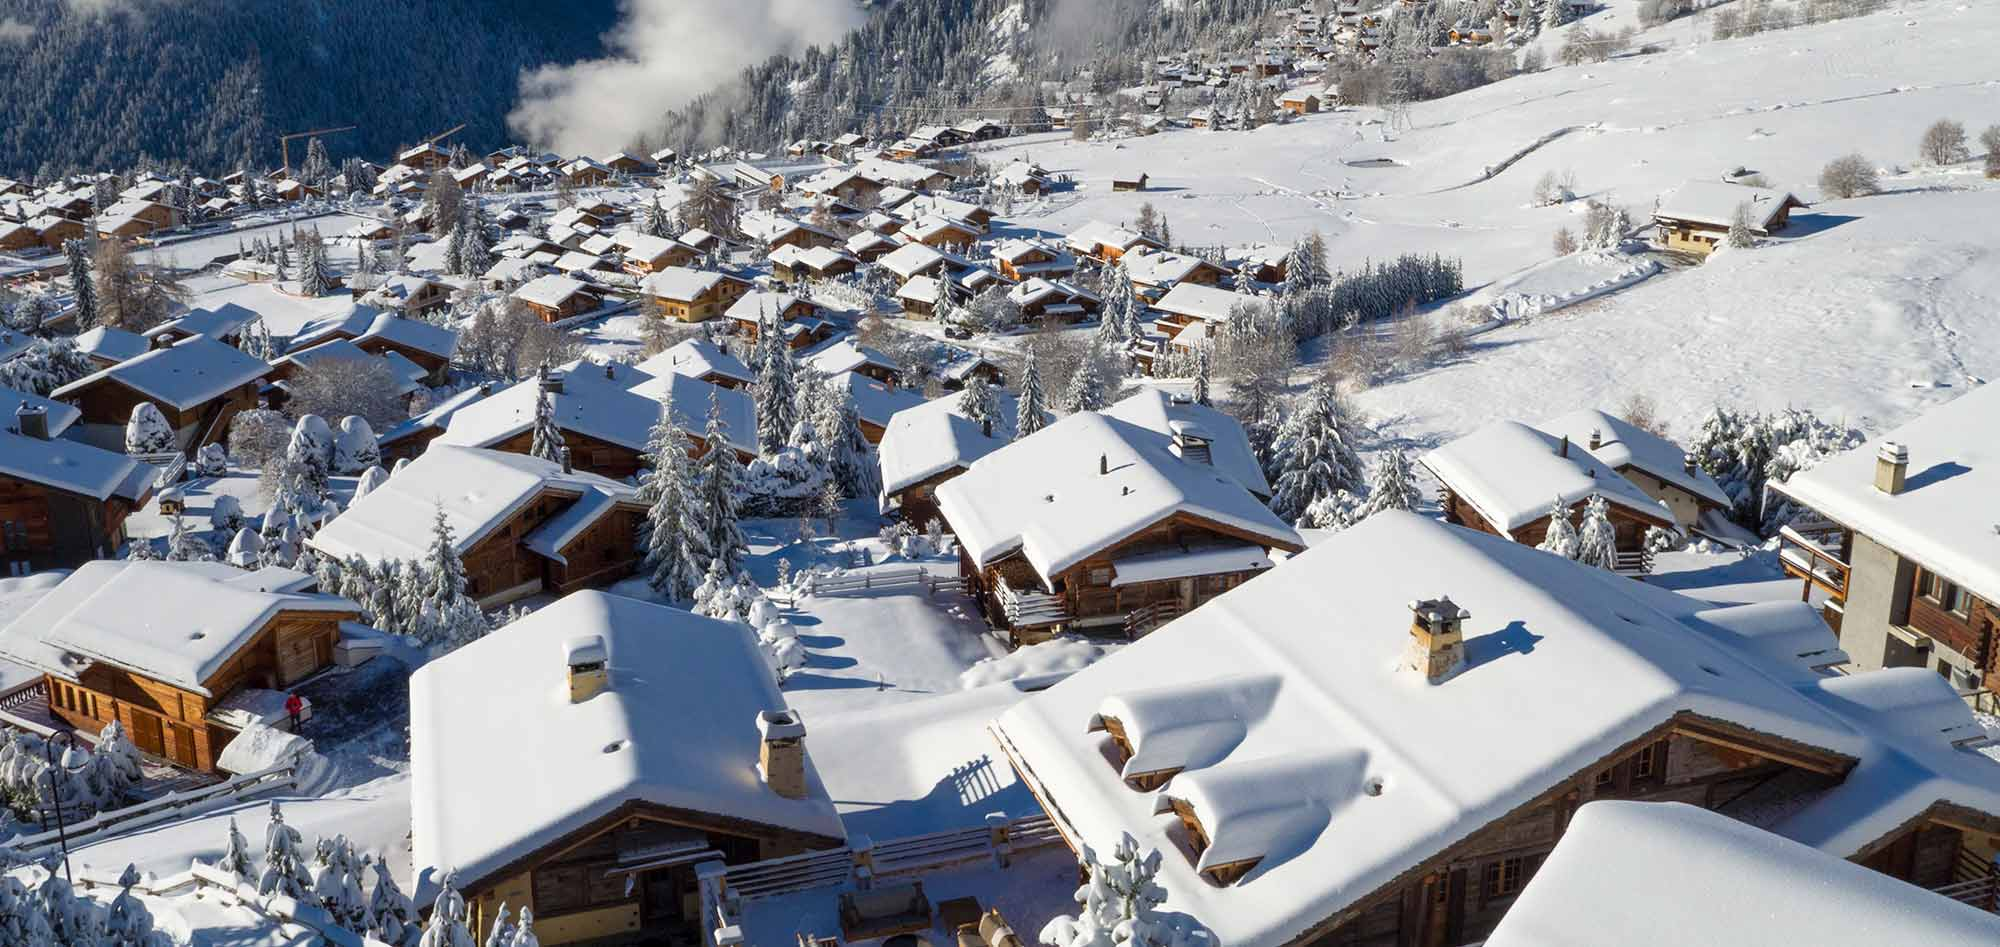 bird's-eye view of snow covered chalet rooftops